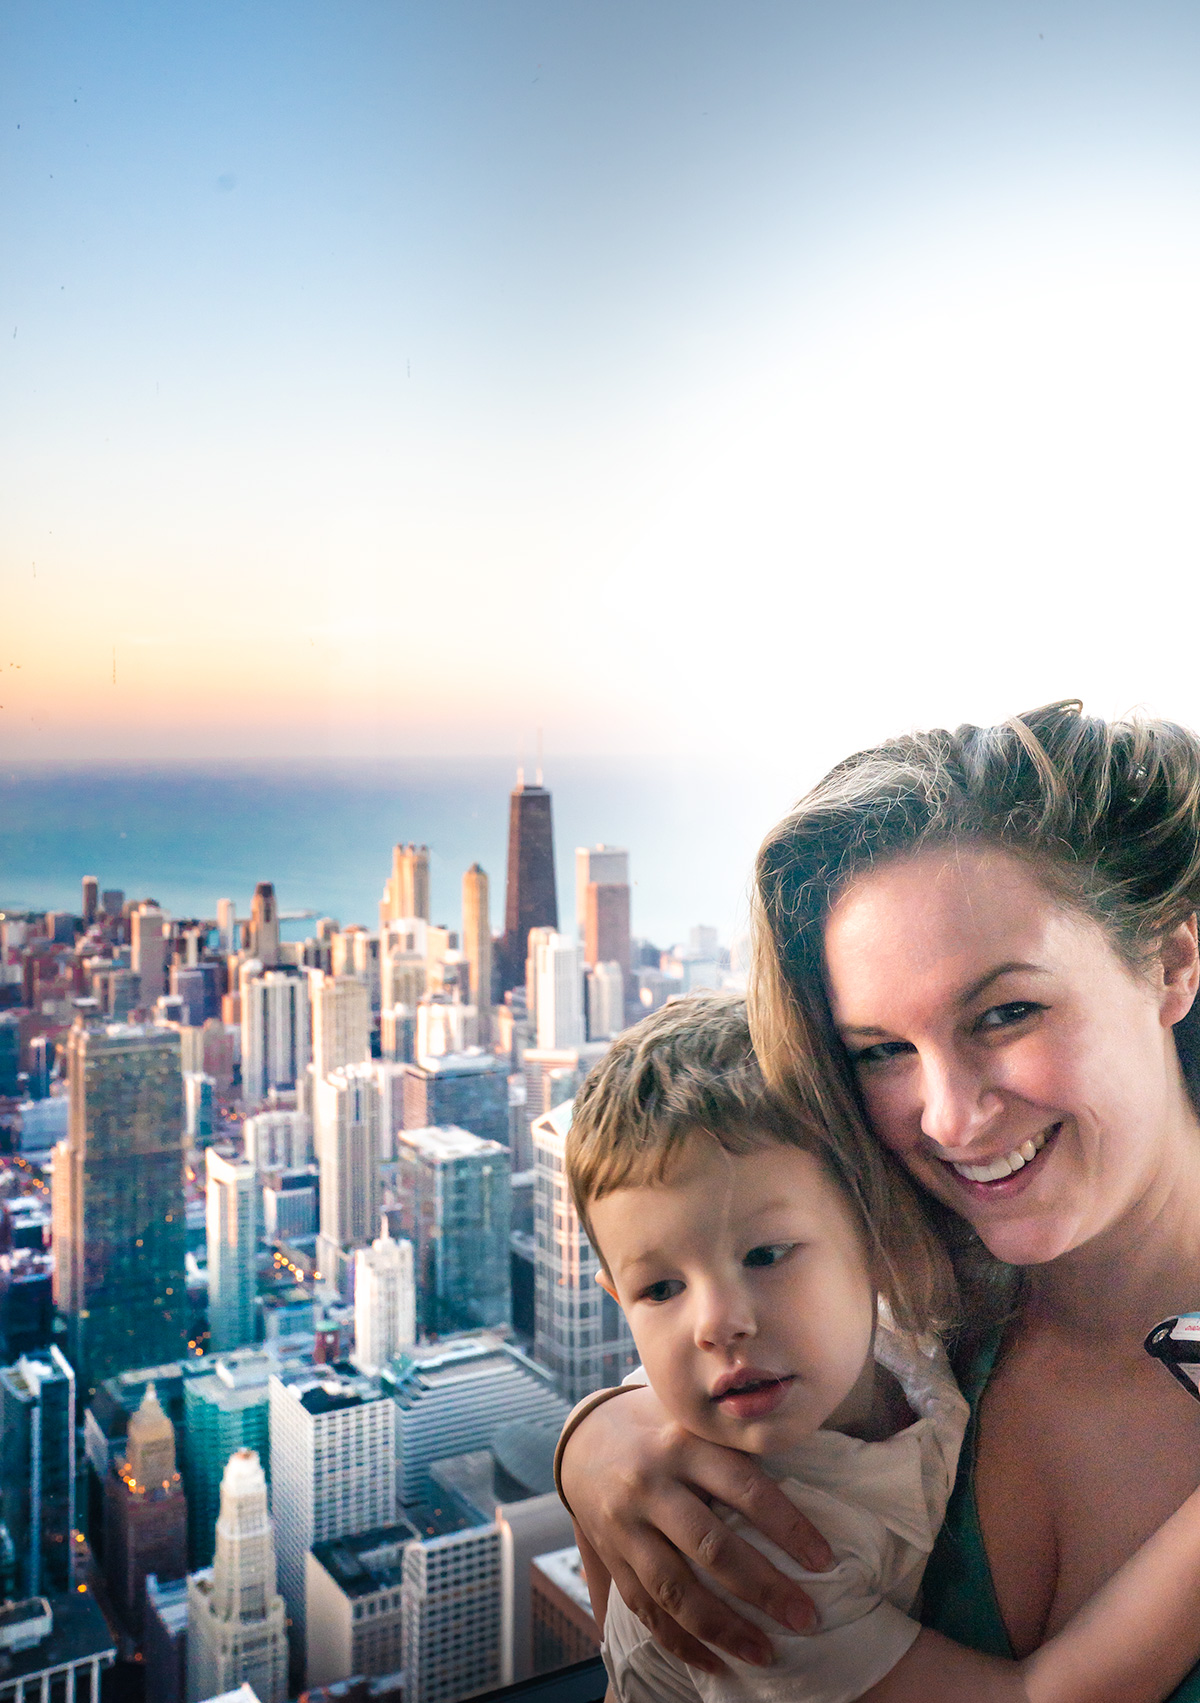 Willis-Tower-Skydeck-Chicago-at-Sunset